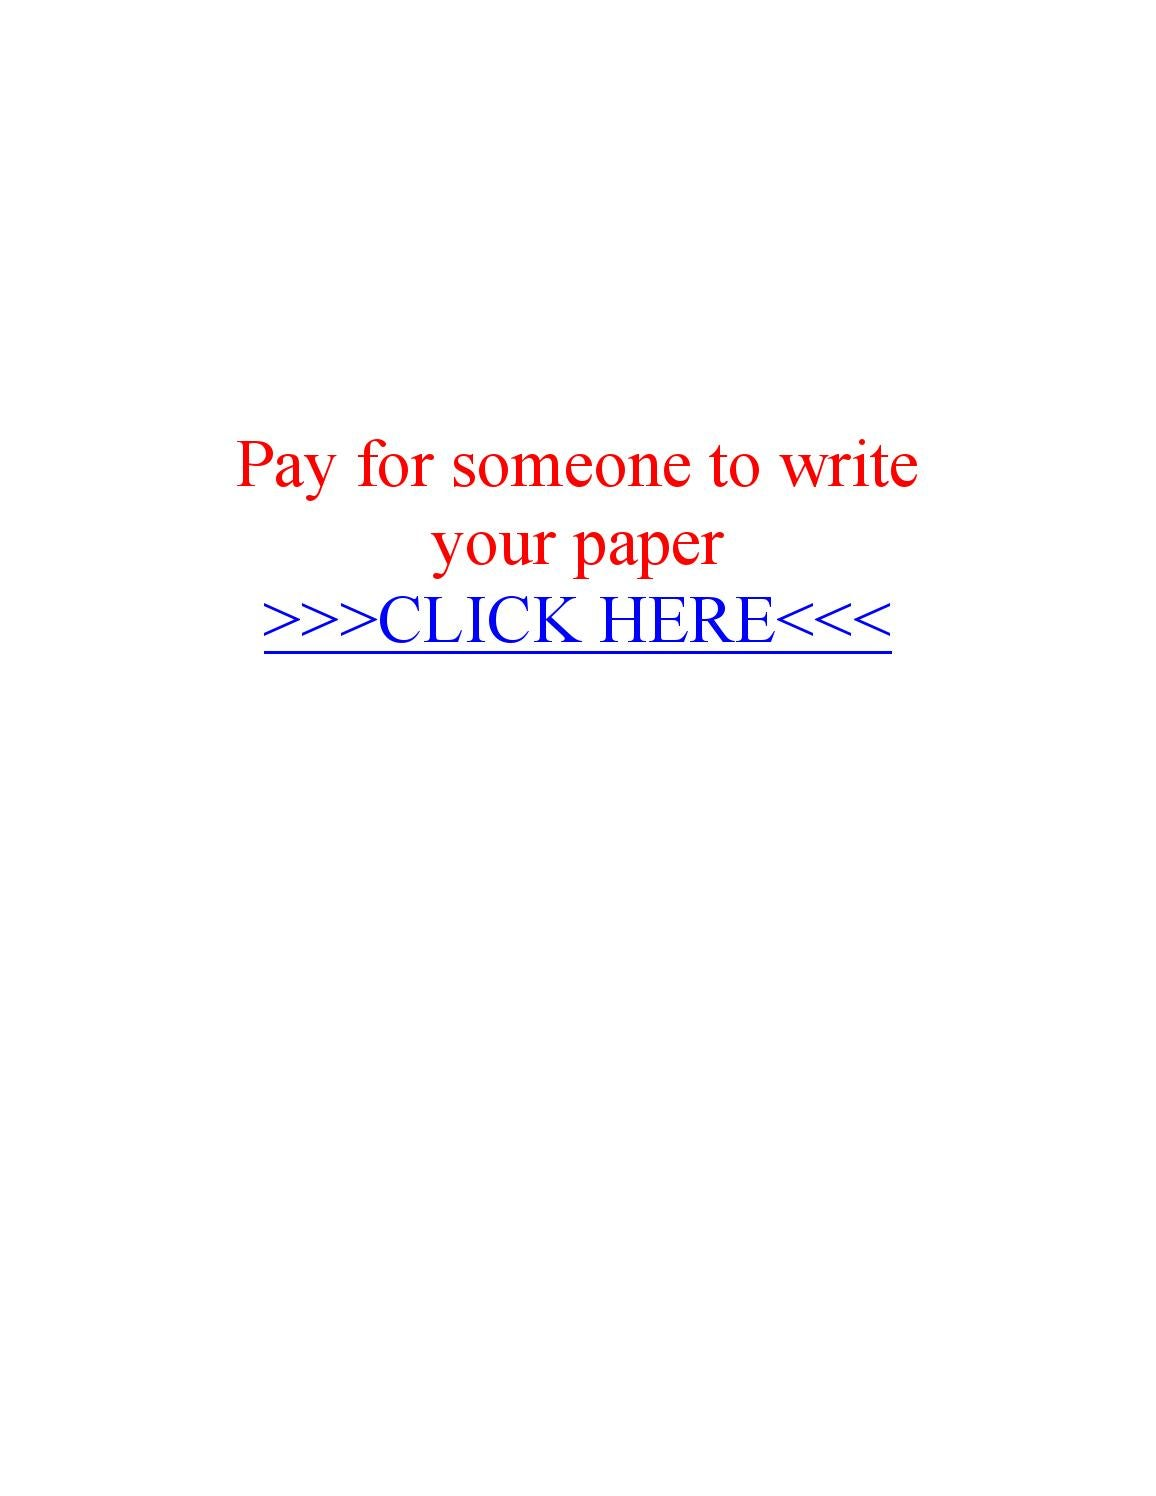 Pay for someone to write your paper